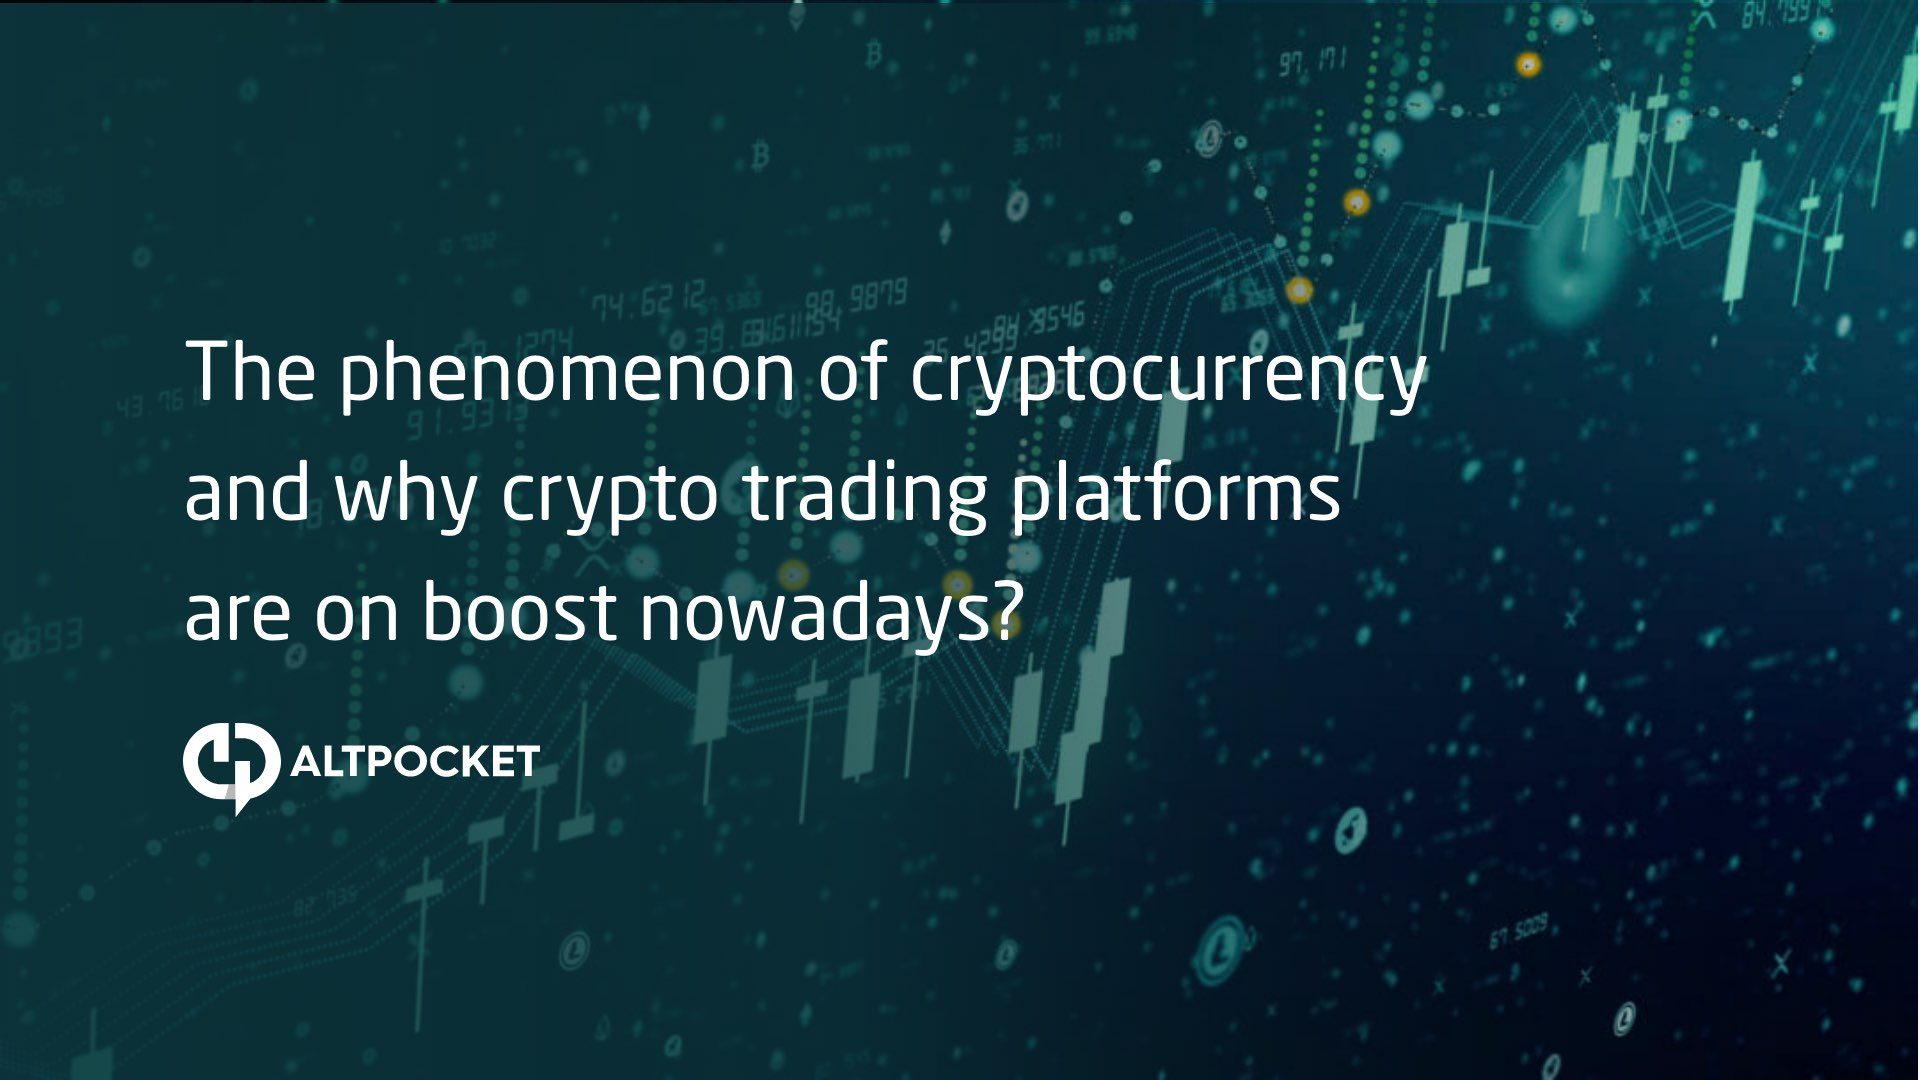 Altpocket what crypto trading platforms on boost today